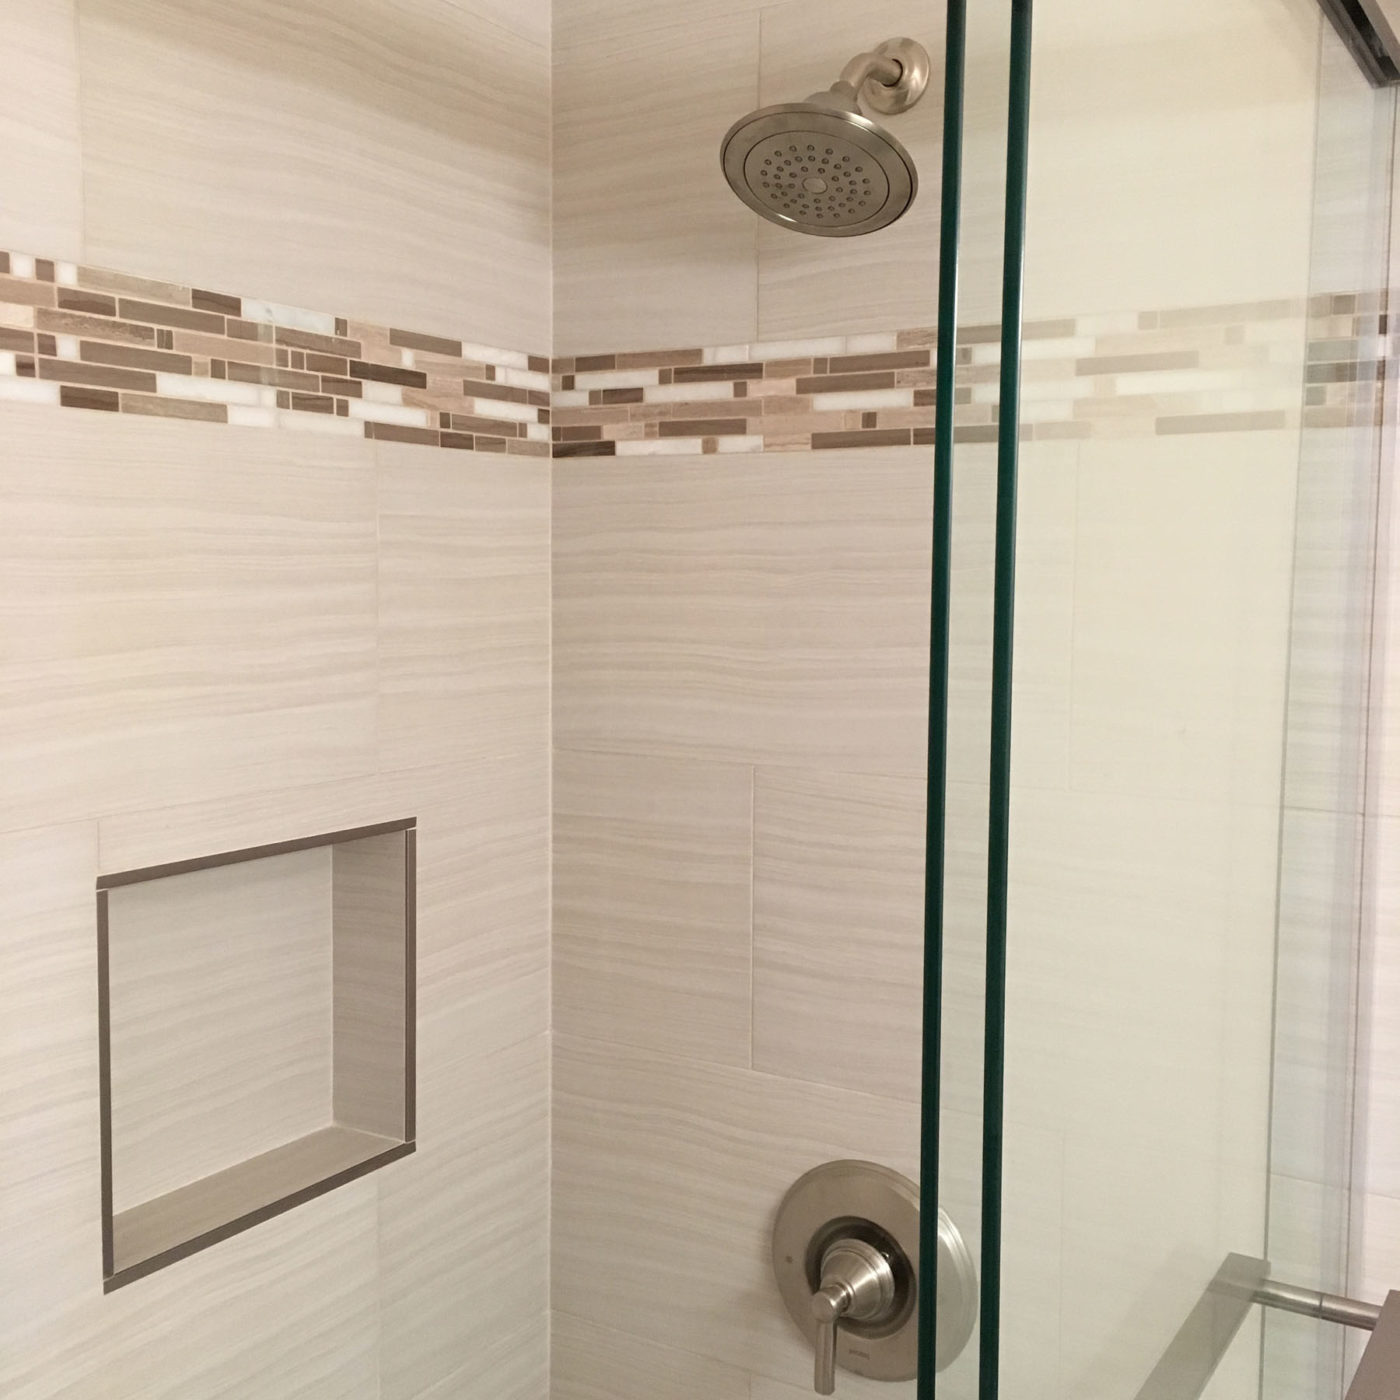 Shower remodeling Elk Grove Village IL